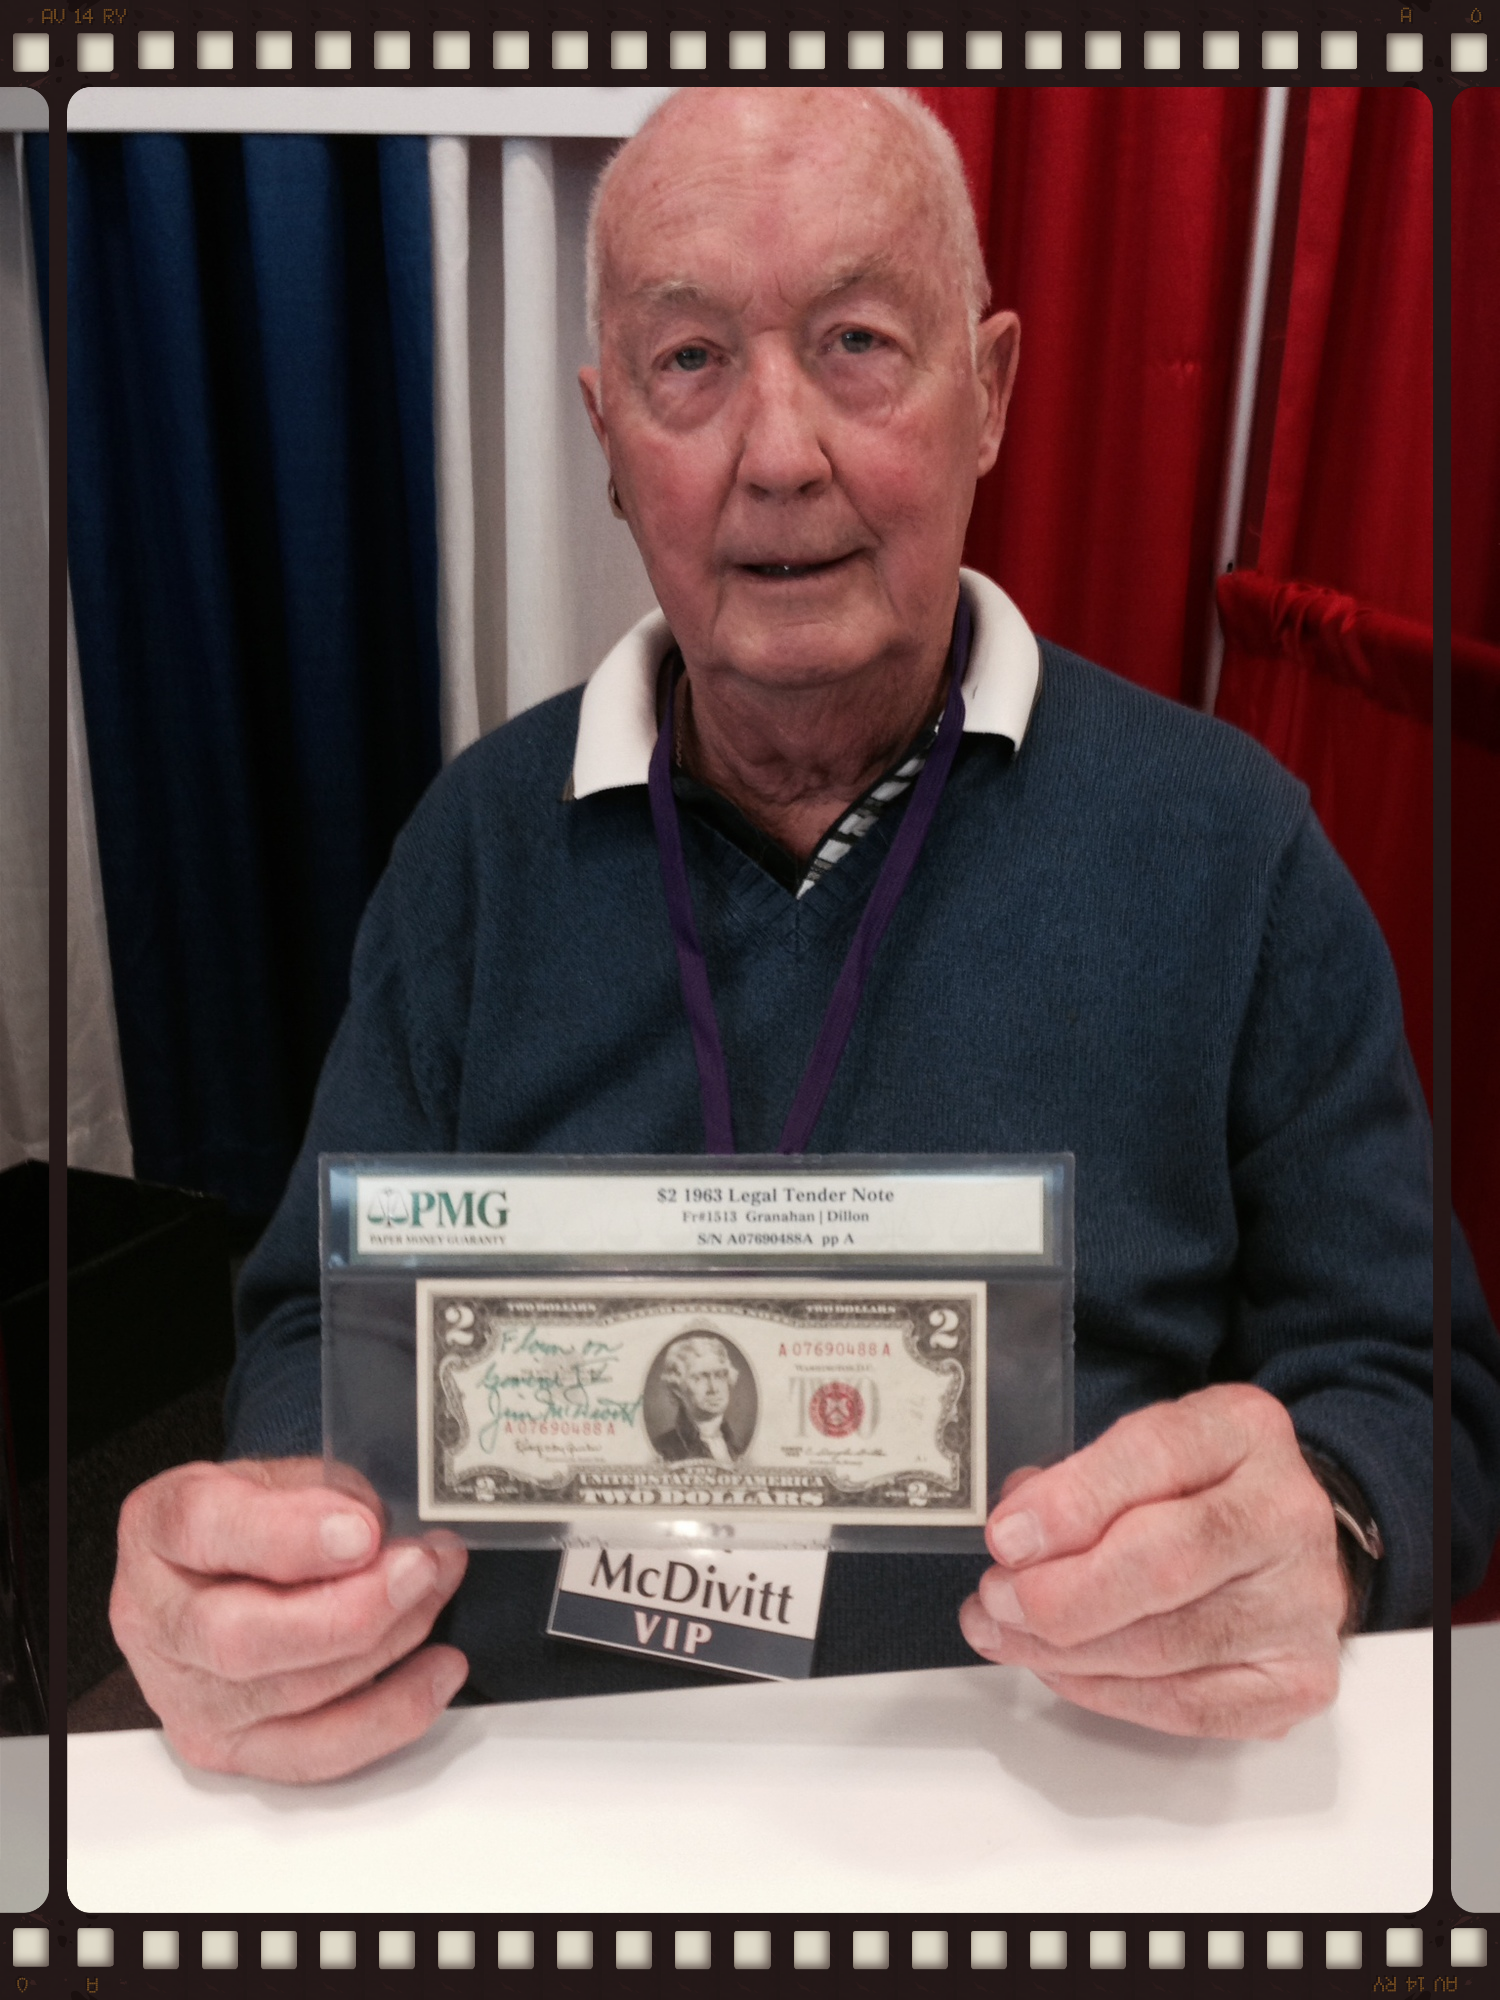 Jim McDivitt reunited with his flown $2 bill at SpaceFest in Pasadena, California, in May of 2014.